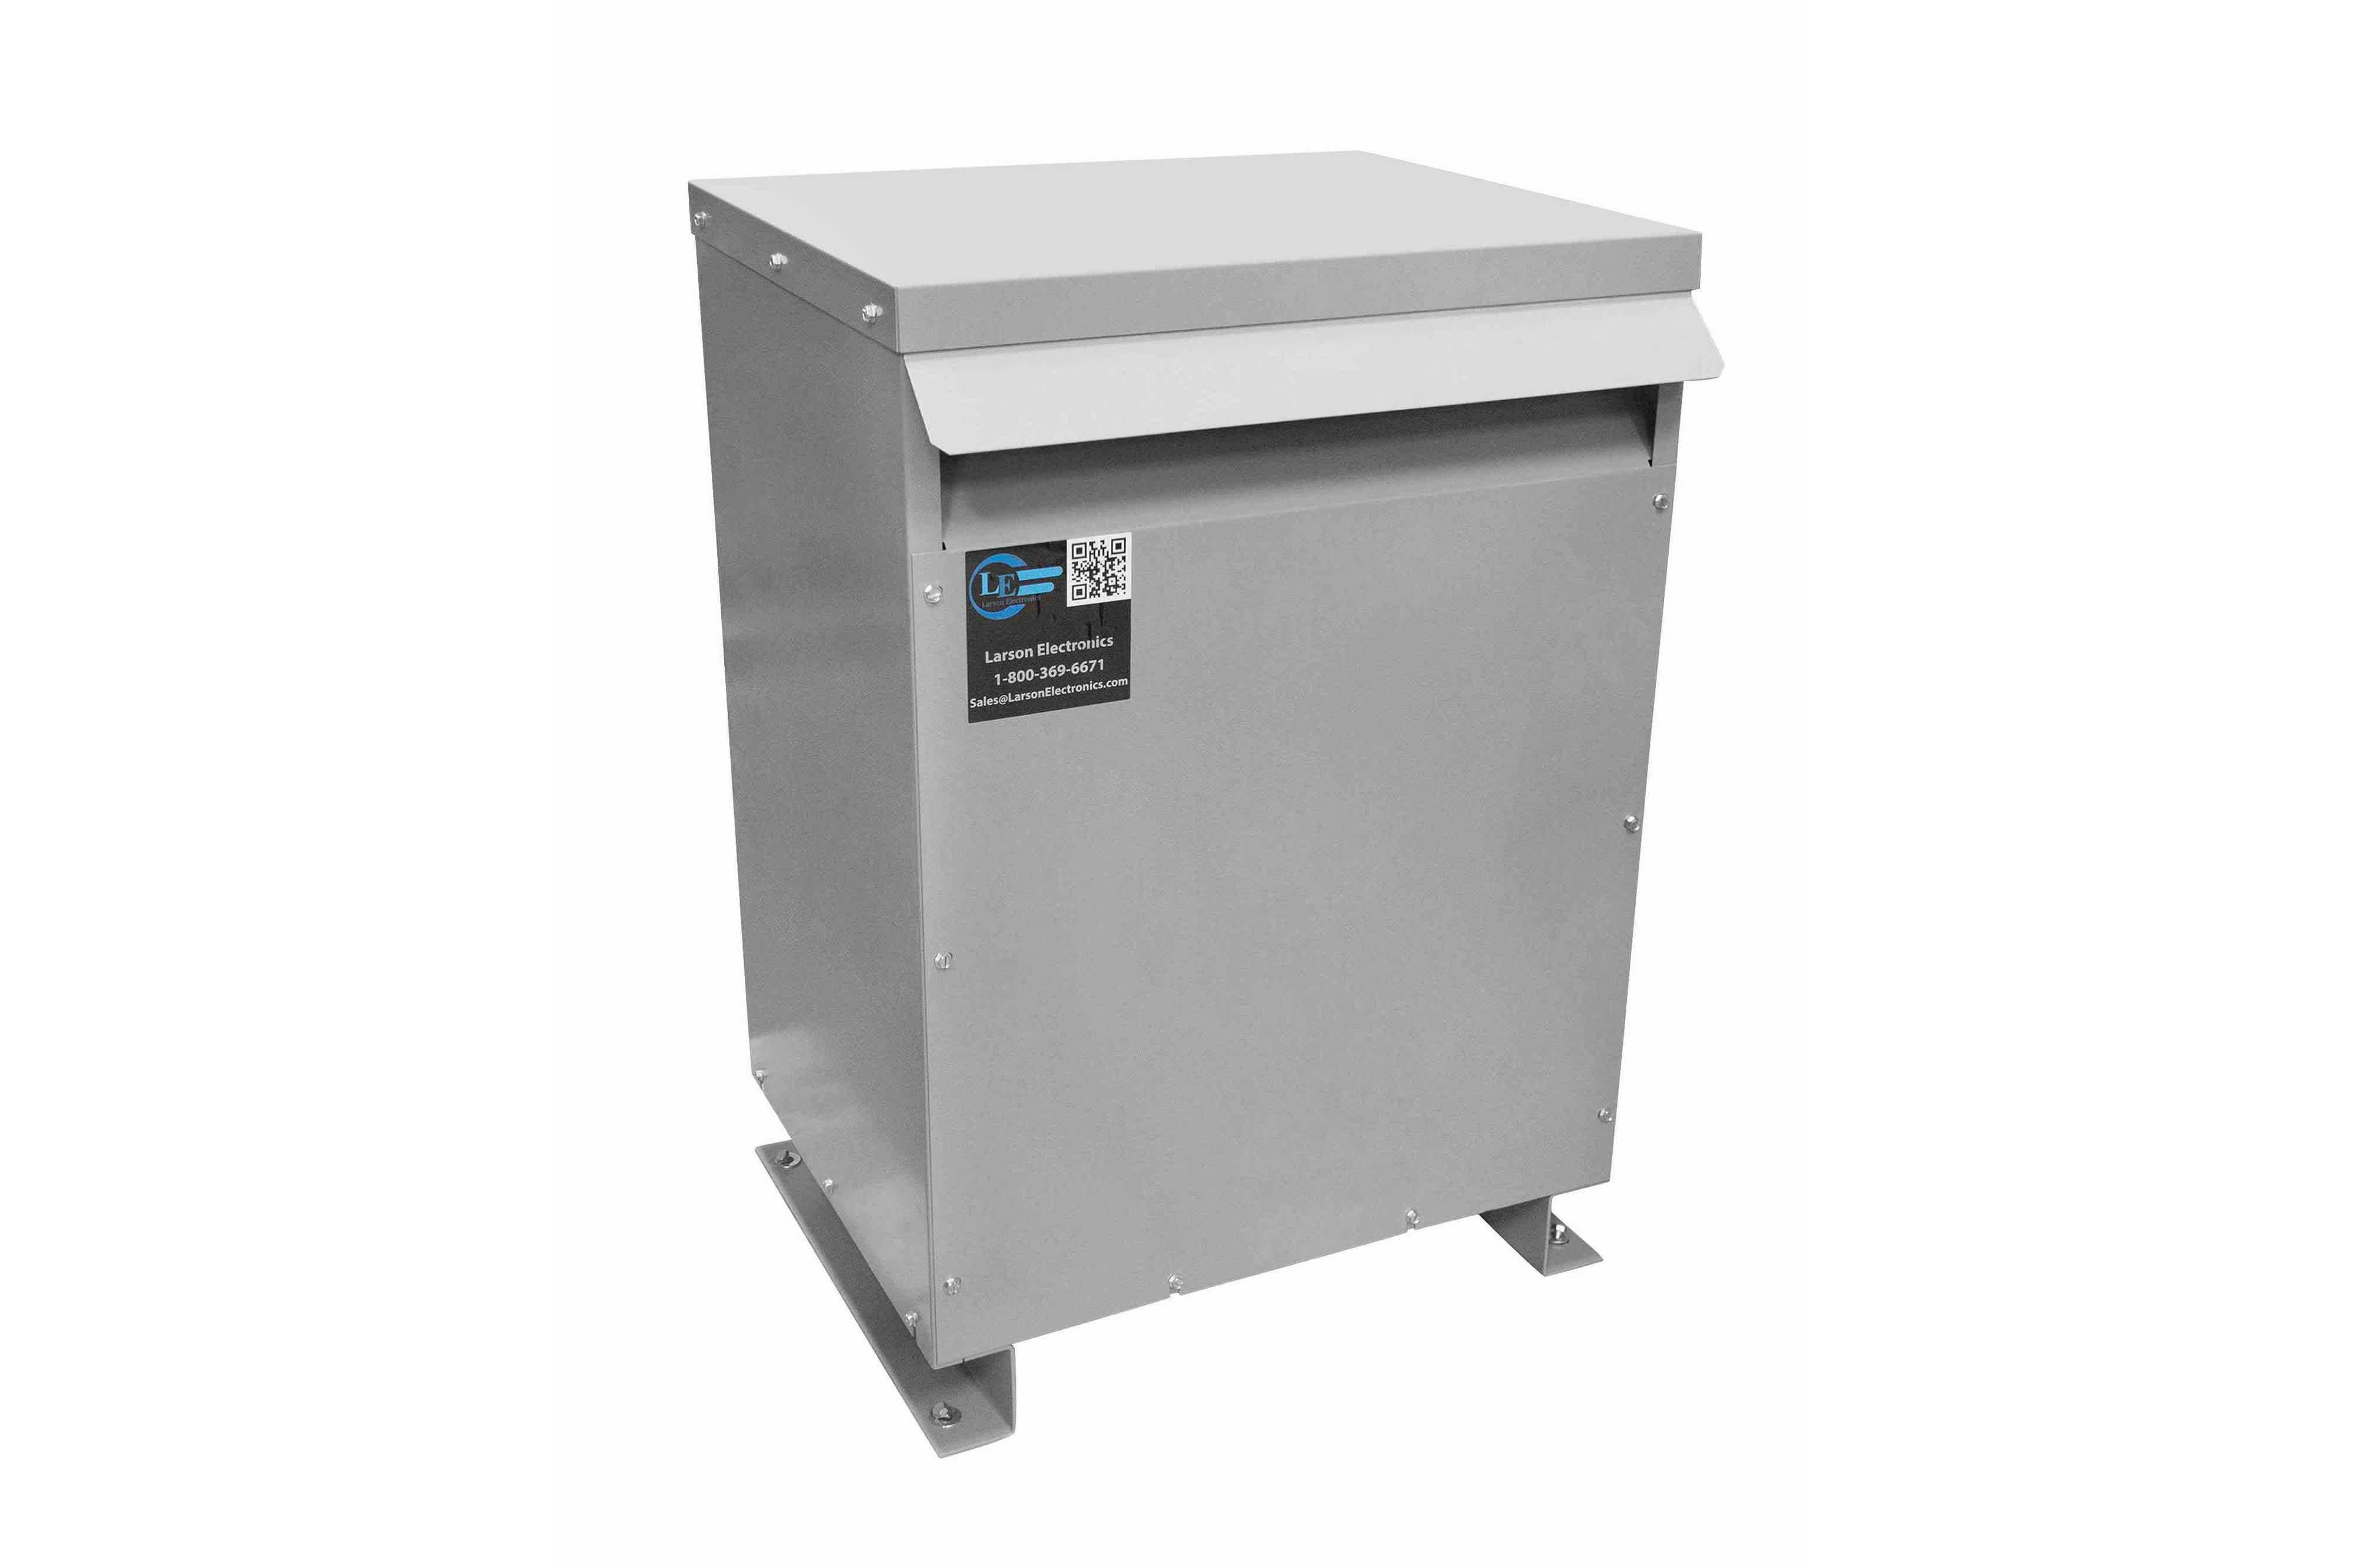 30 kVA 3PH DOE Transformer, 240V Delta Primary, 600Y/347 Wye-N Secondary, N3R, Ventilated, 60 Hz